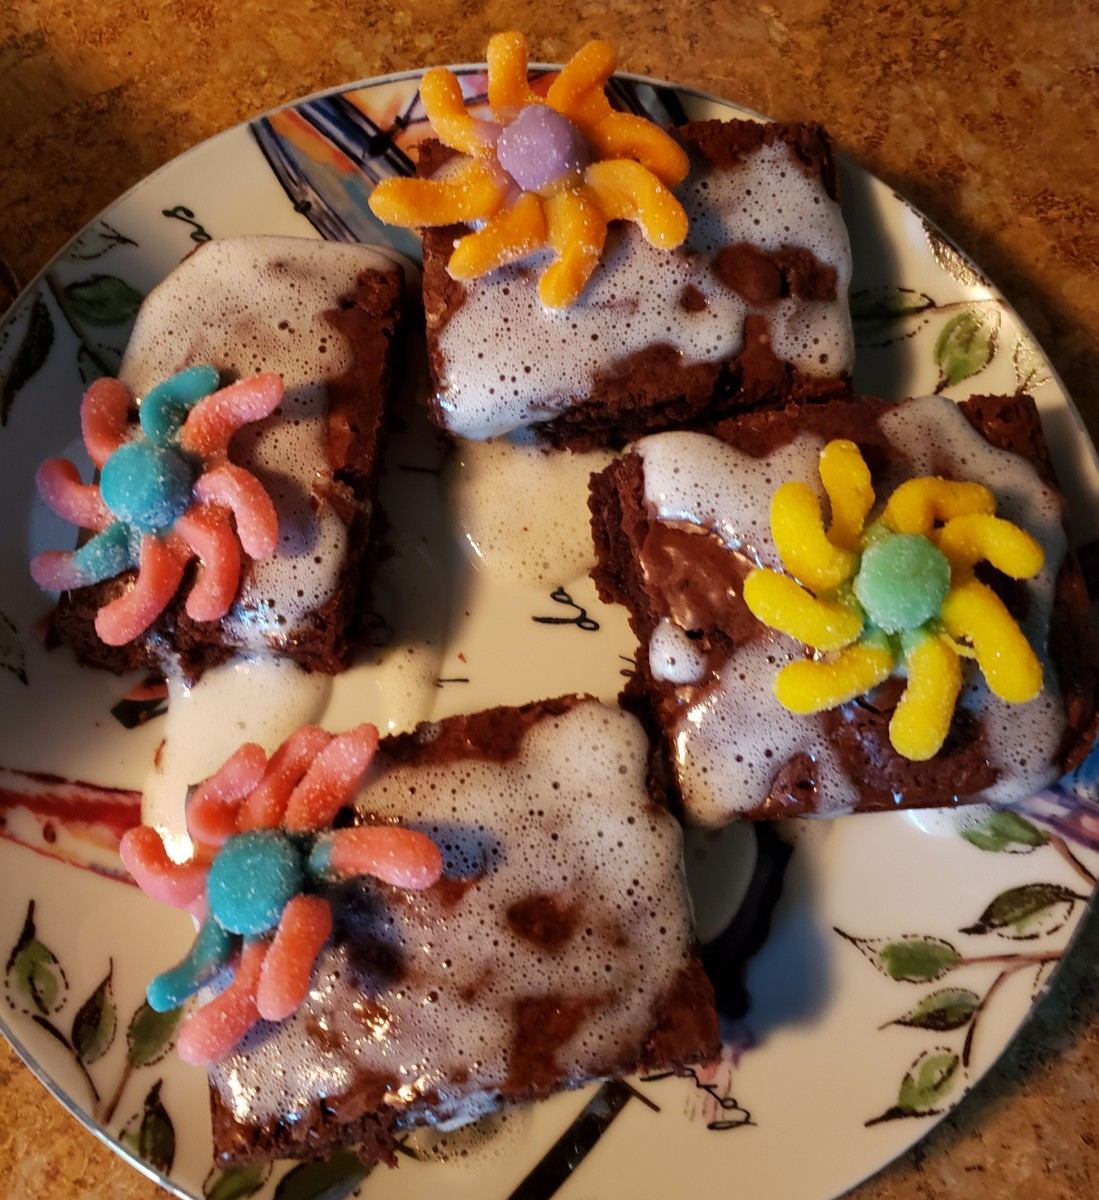 Place a Trolli sour candy on each brownie.